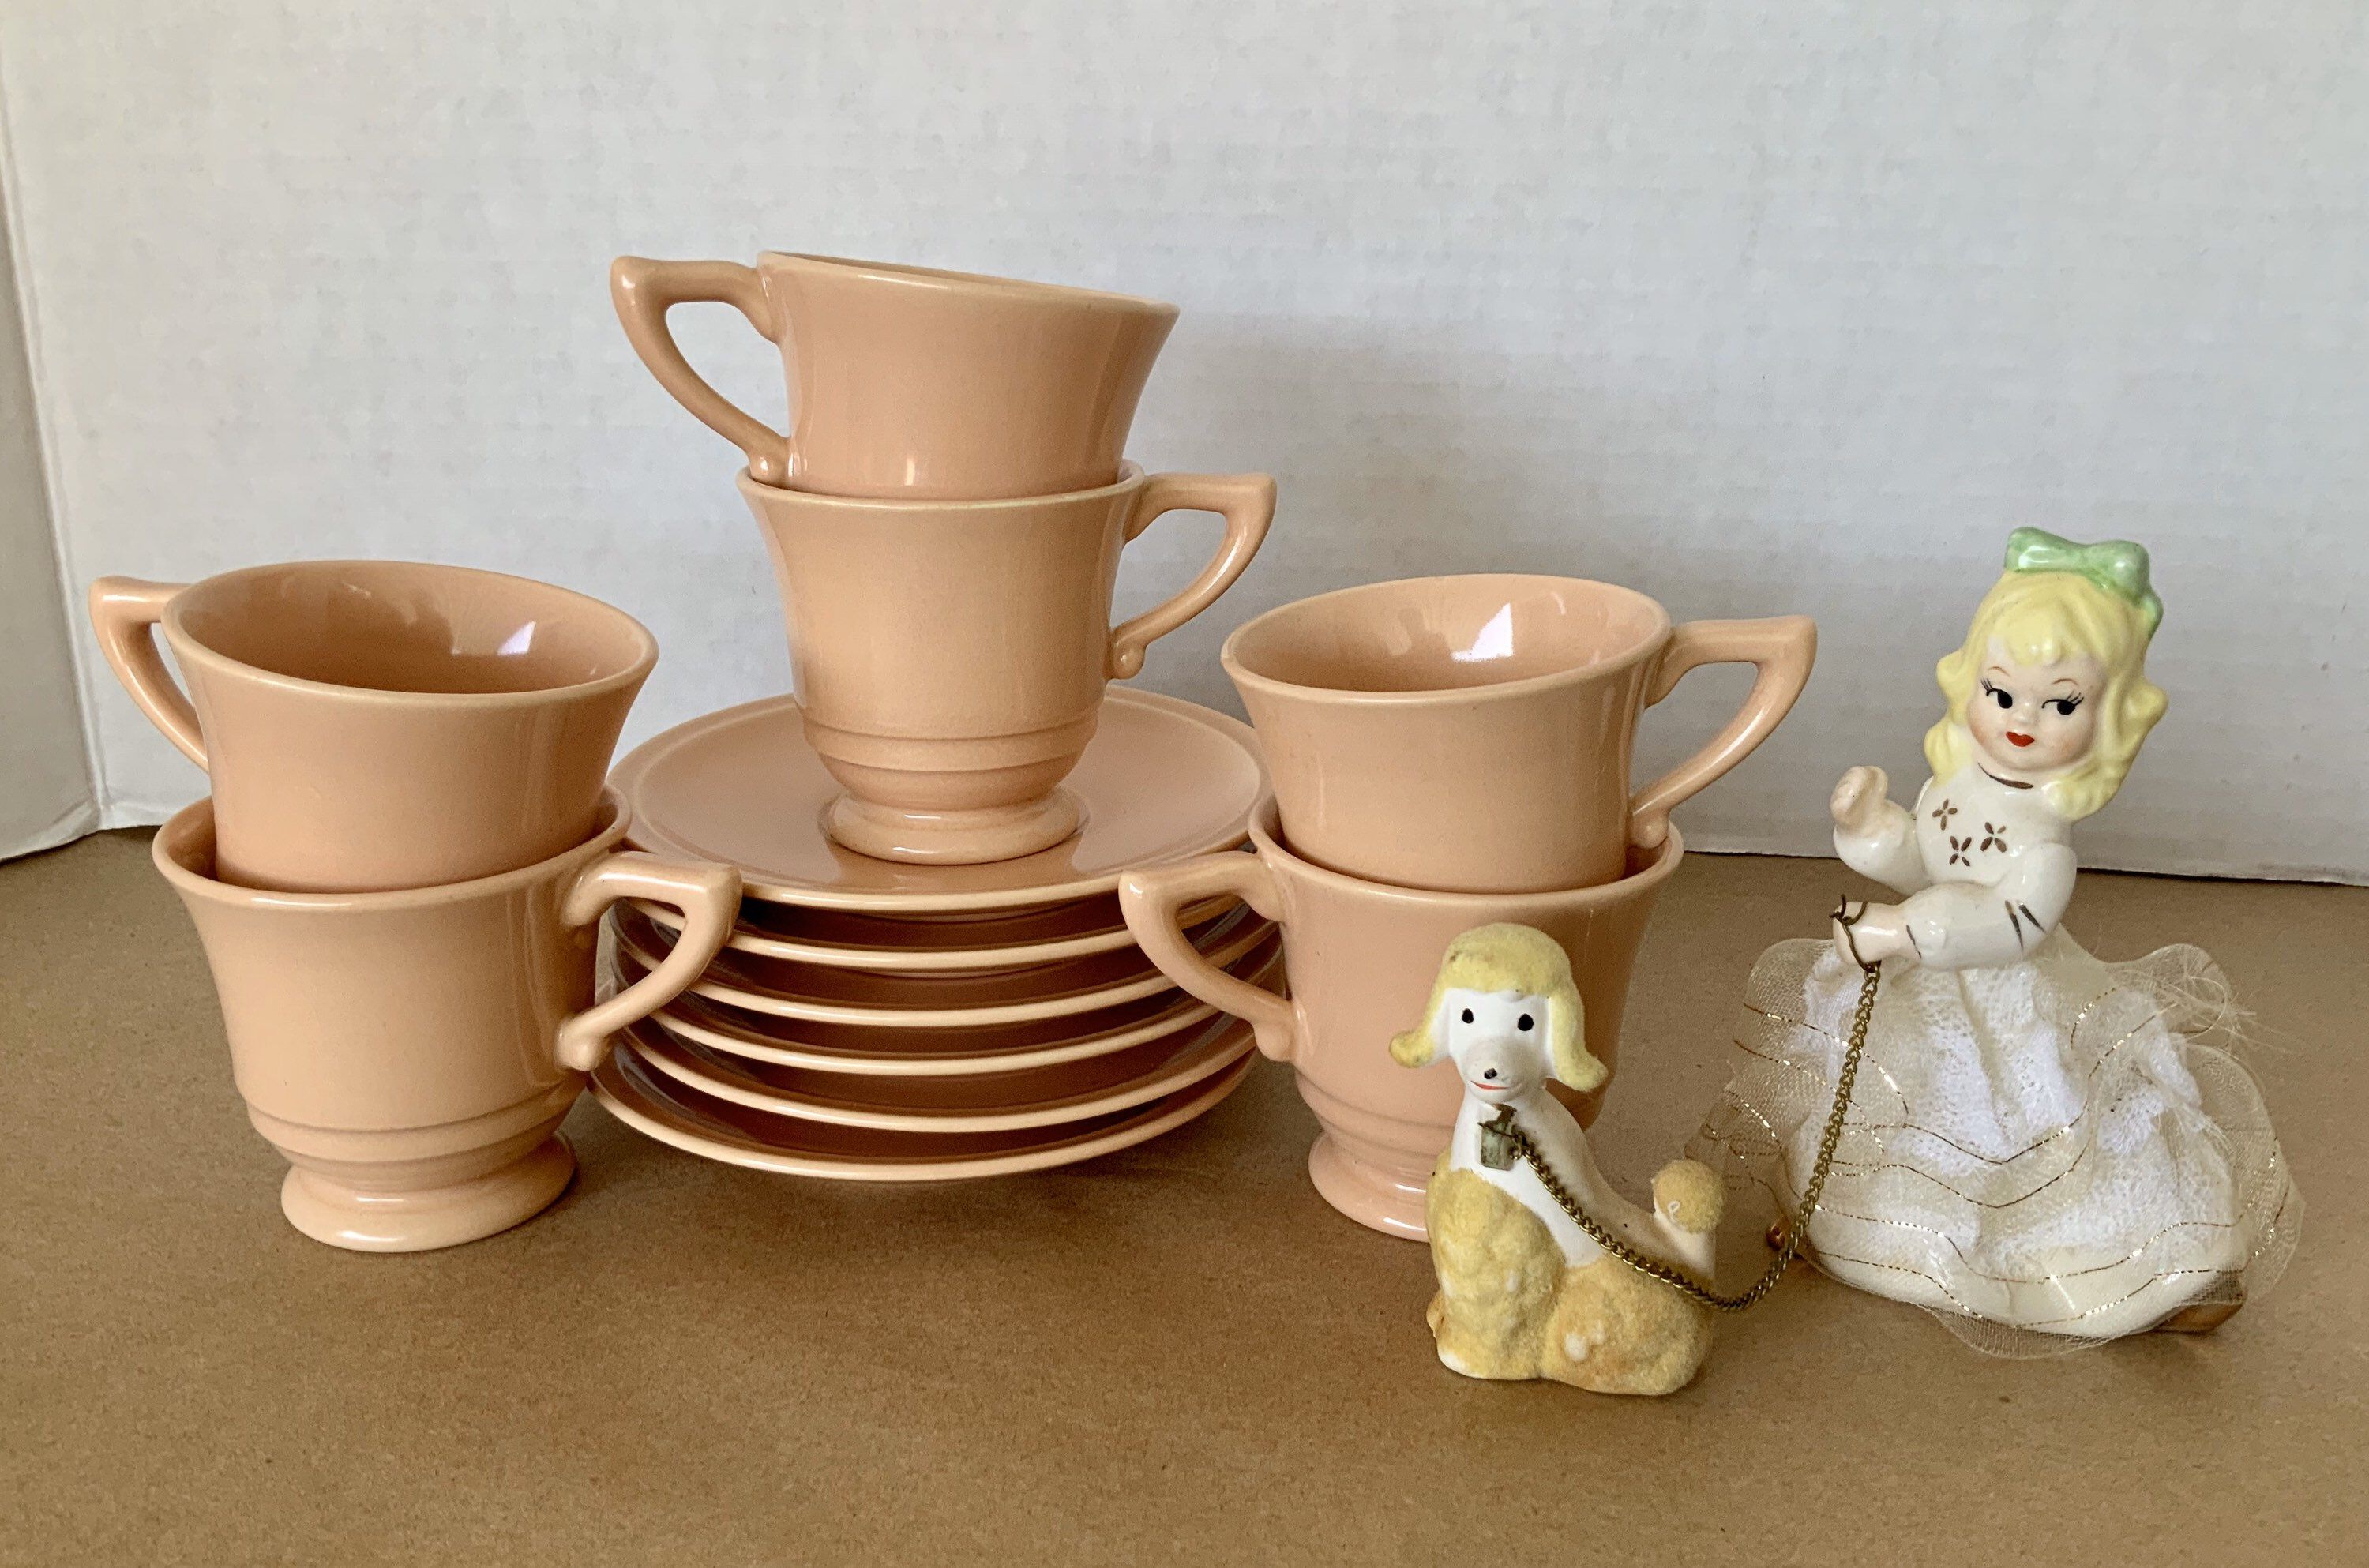 Gladding McBean, Franciscan Ware, expresso/ demitasse, 6 set, cups with saucers, El patio pattern in a peachy, salmon glaze.